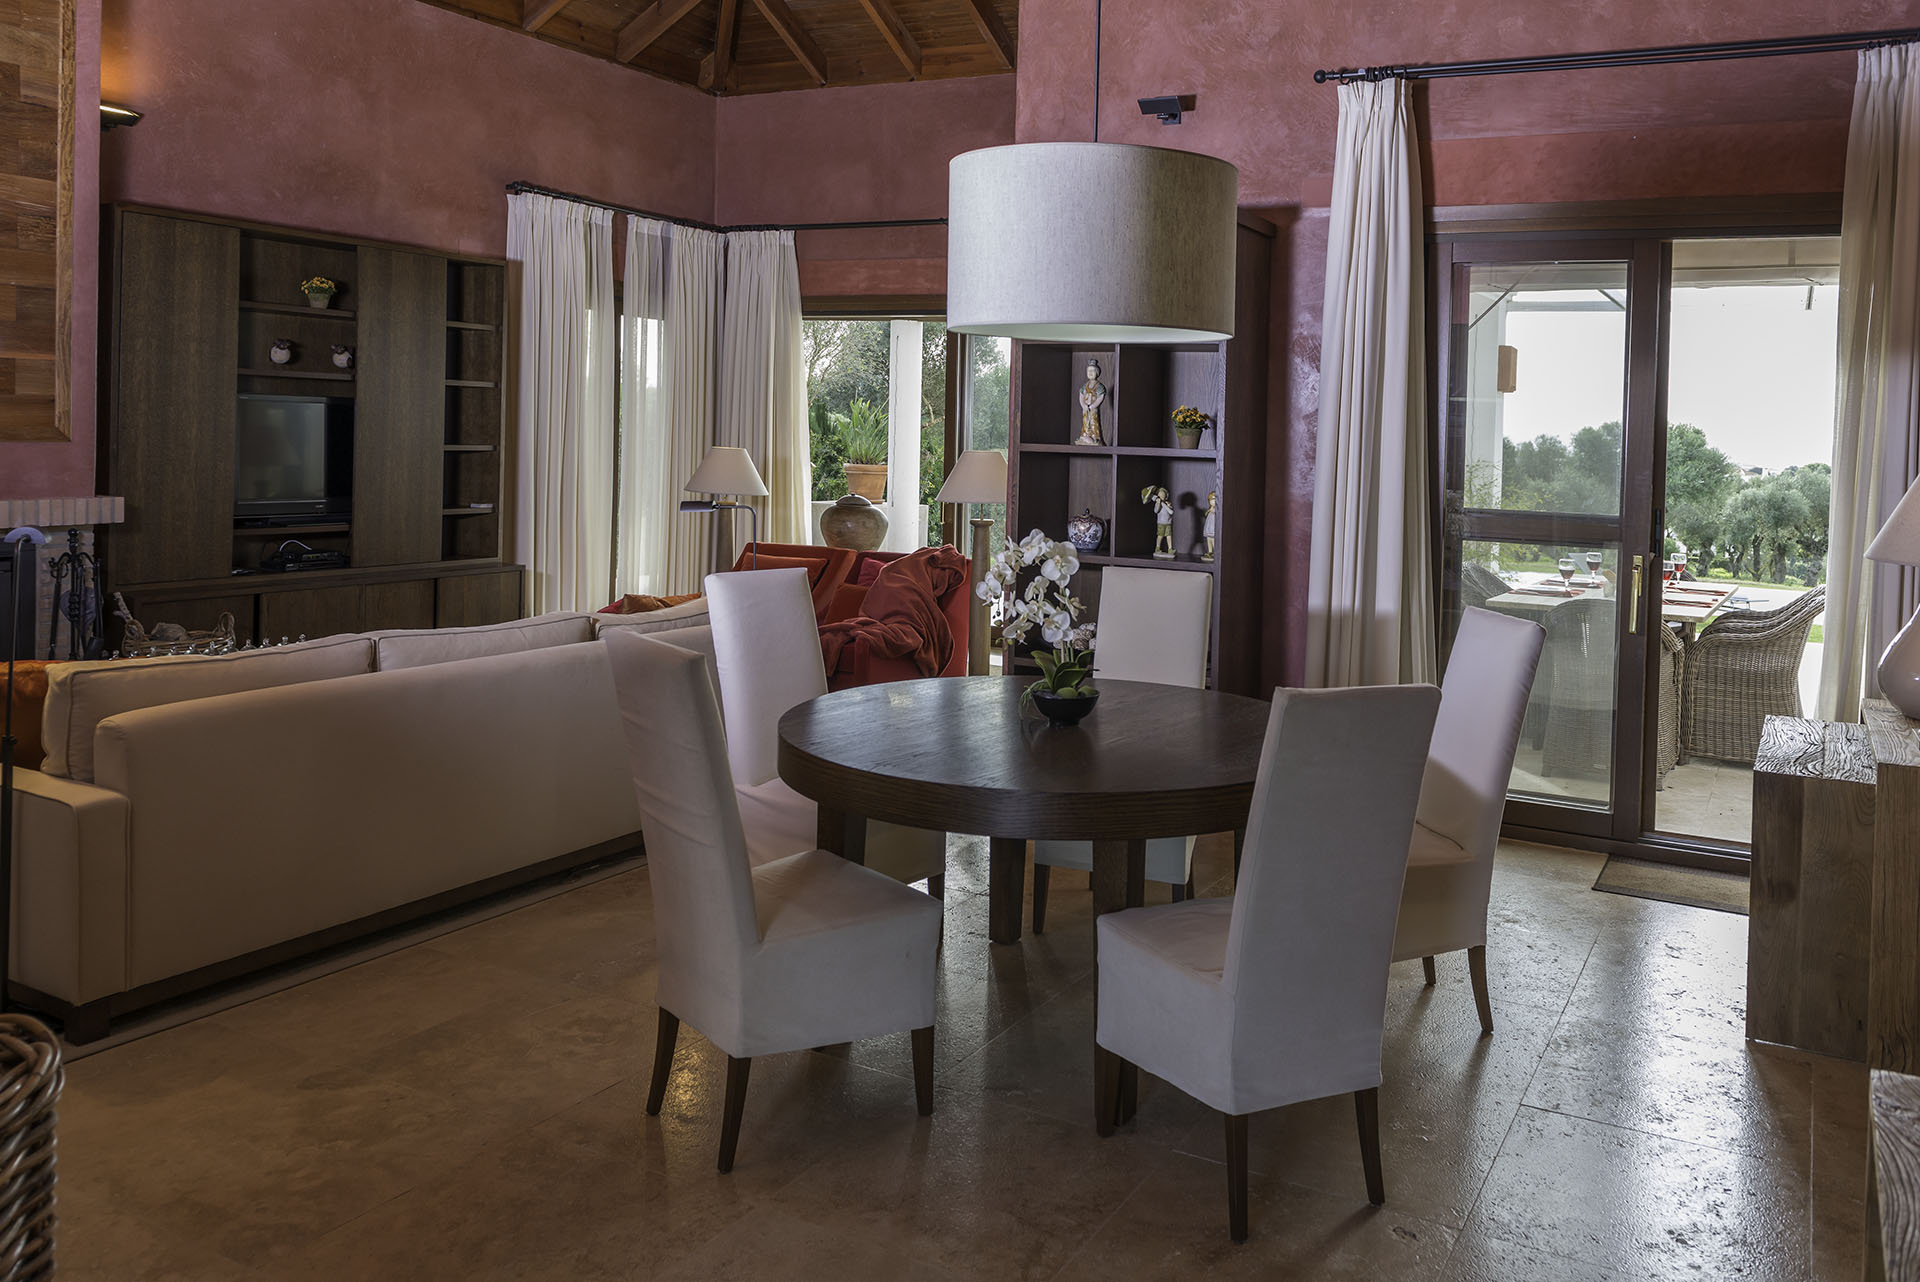 Villa Violeta dining area and salon